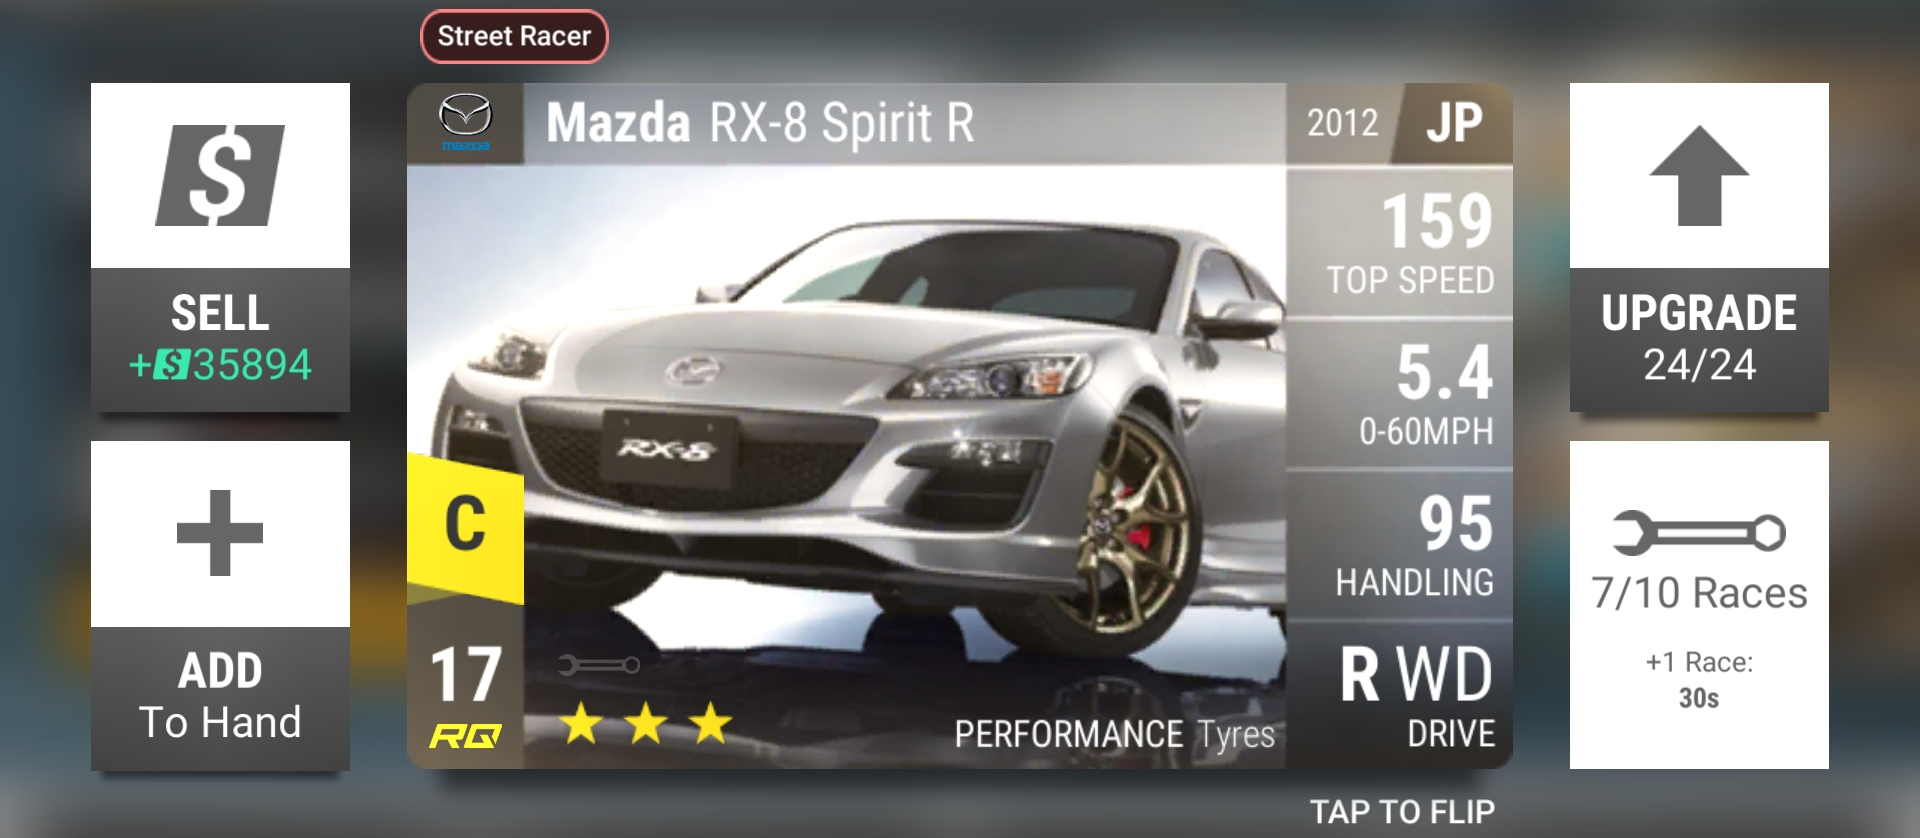 Mazda Vehicle Discussion Page 6 Hutch Forums